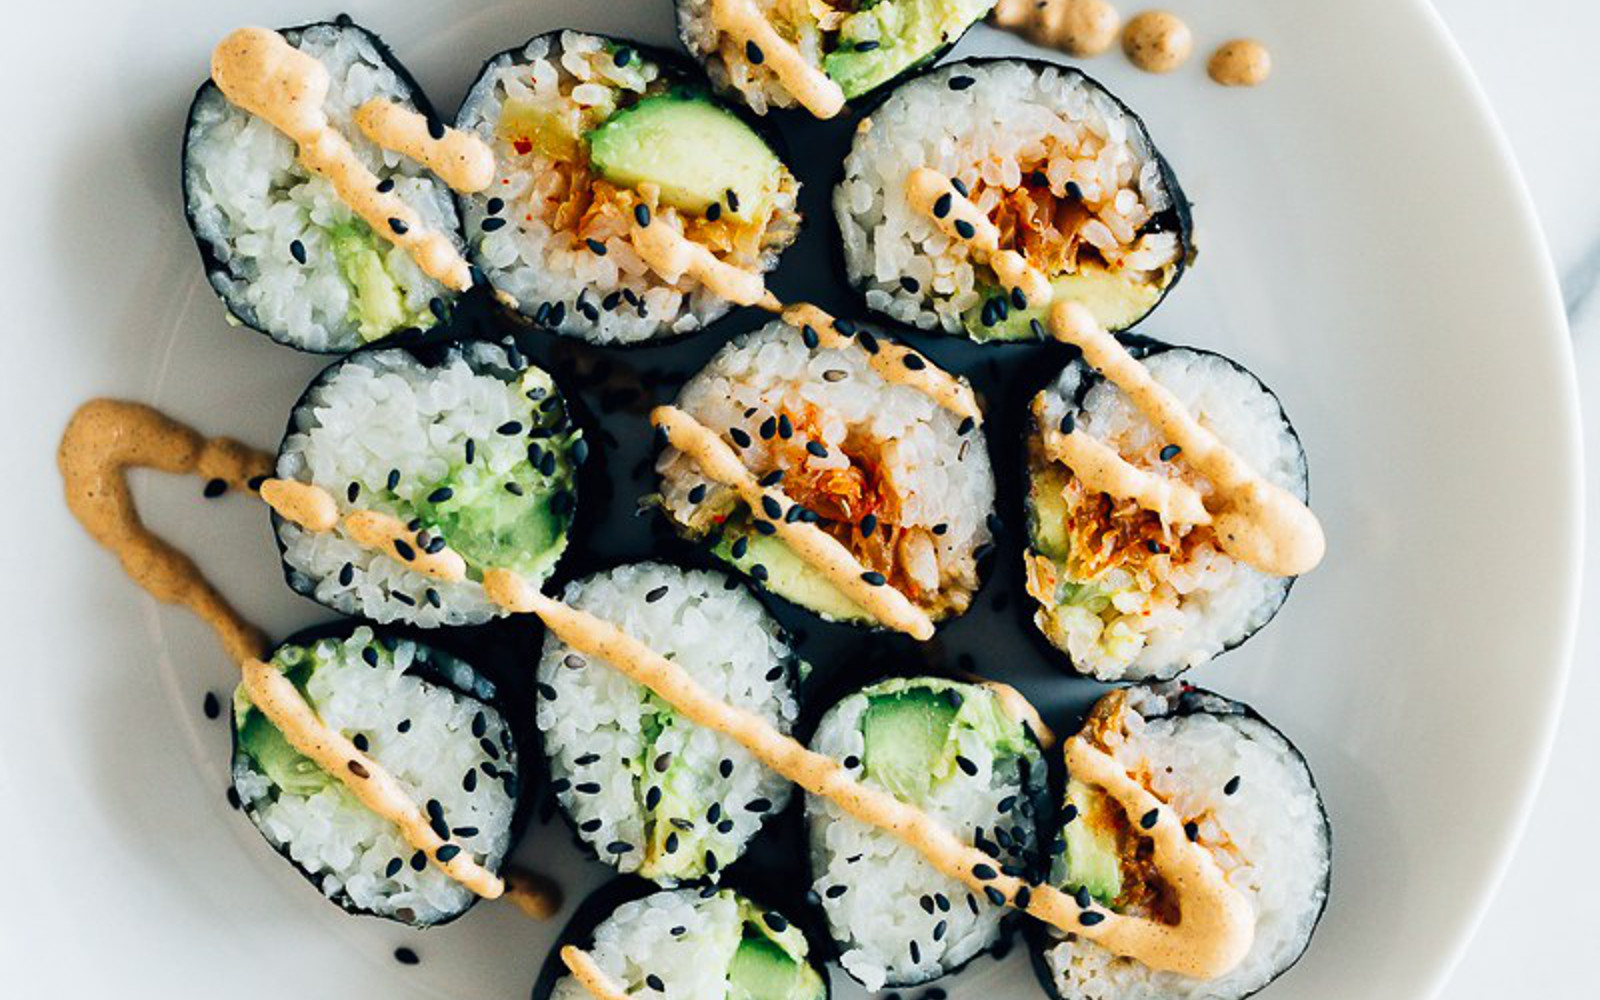 Dreaming of Sushi? Check Out These 15 Veganized Versions ...